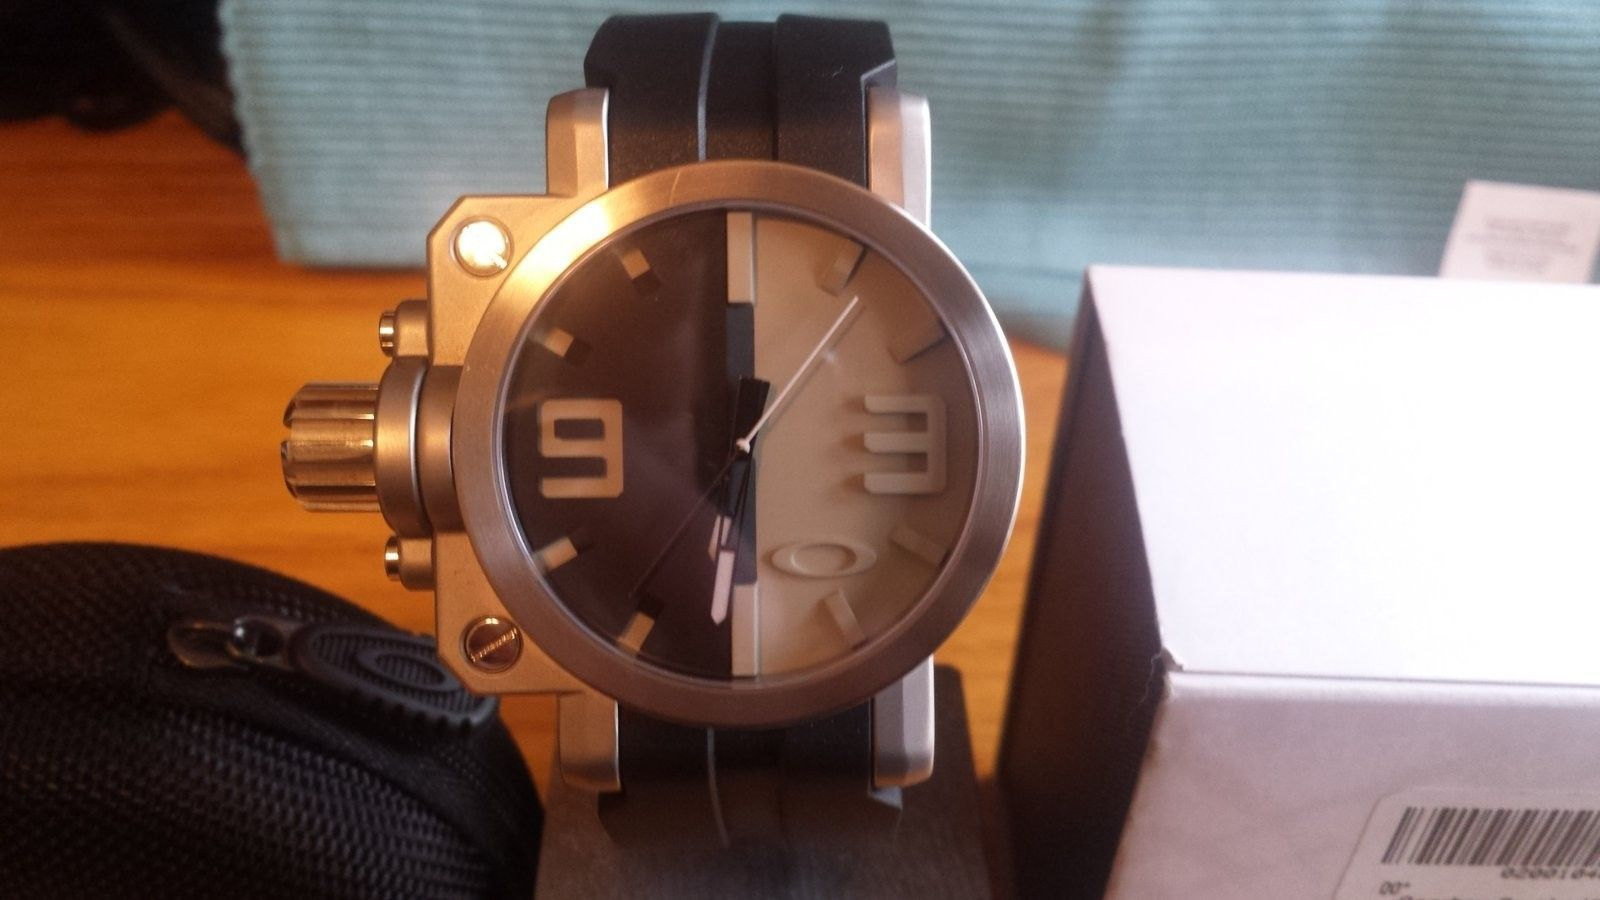 or selling Gearbox Black/Tan Dial - 20160319_124220.jpg